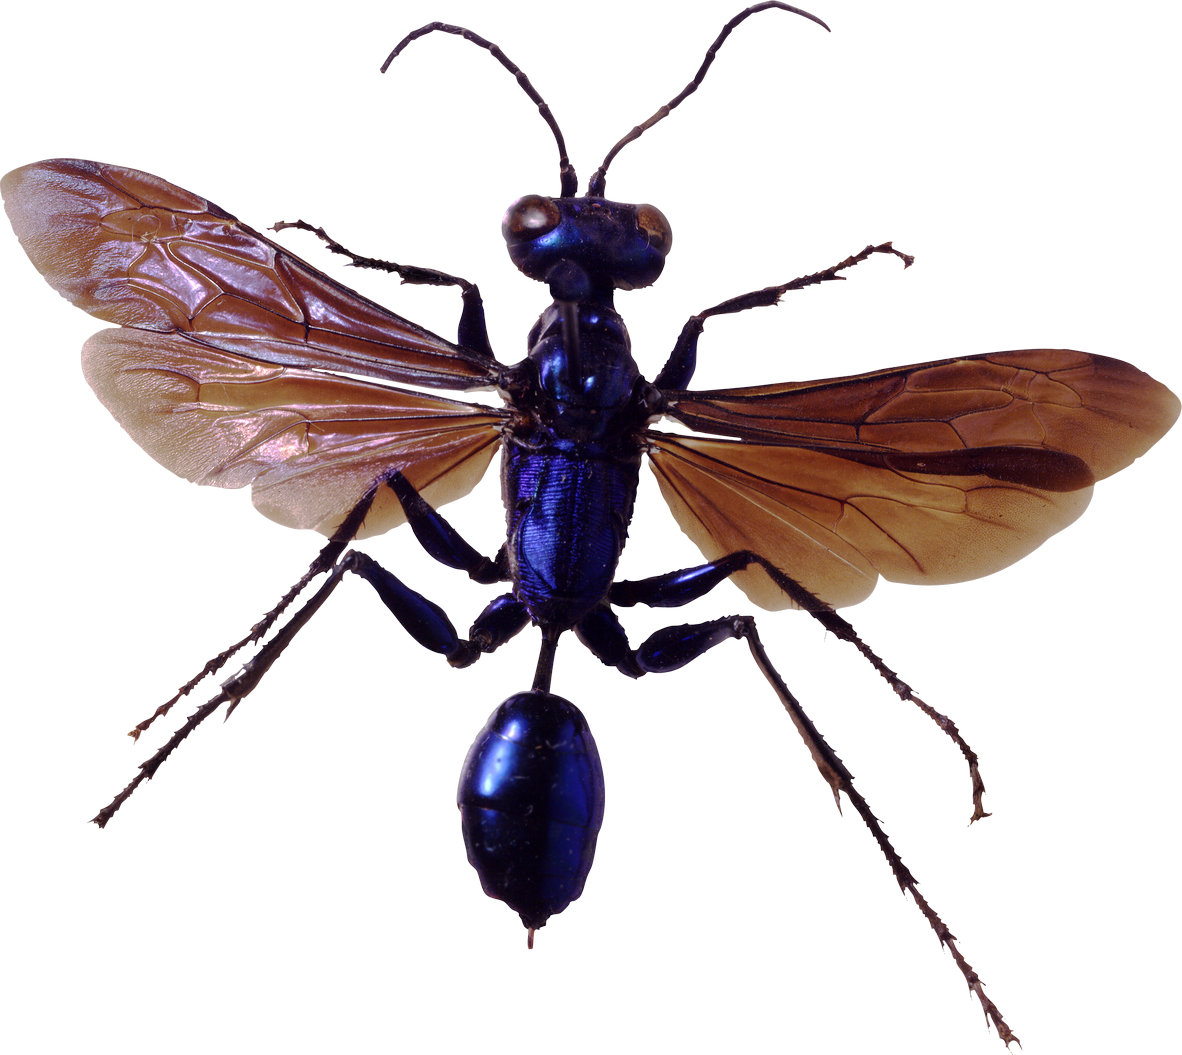 Bug Png Image Mud Wasp Bee Wasp Hornet